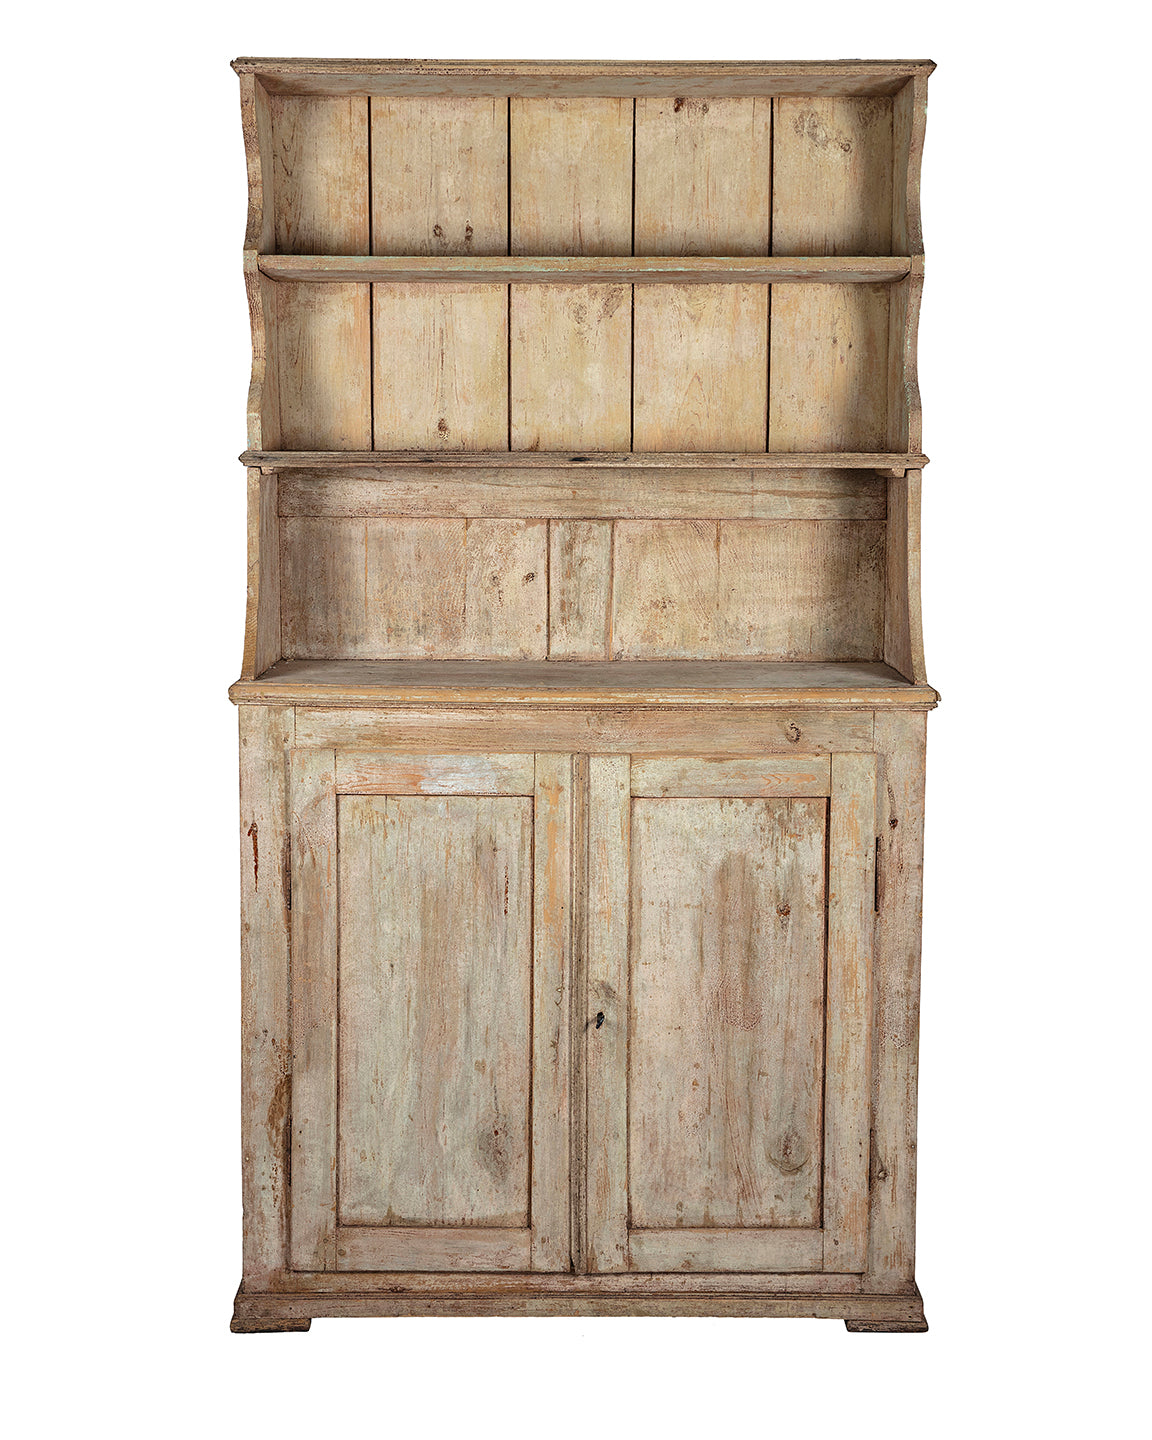 French open-faced cupboard. 19th century